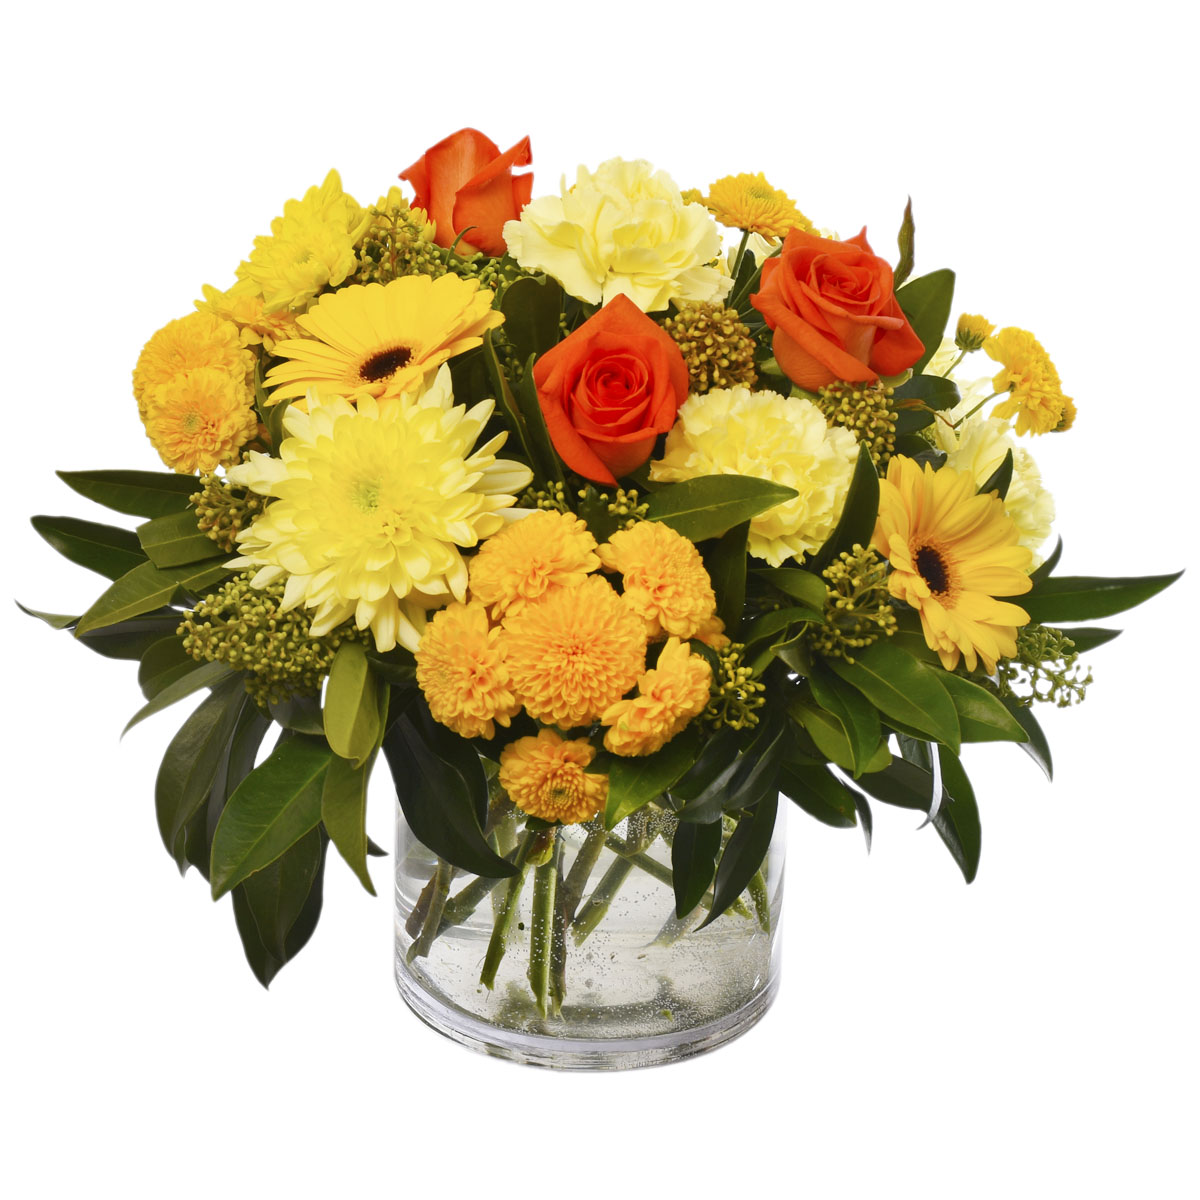 Happy Birthday flower delivery in Vancouver, Burnaby and Coquitlam.